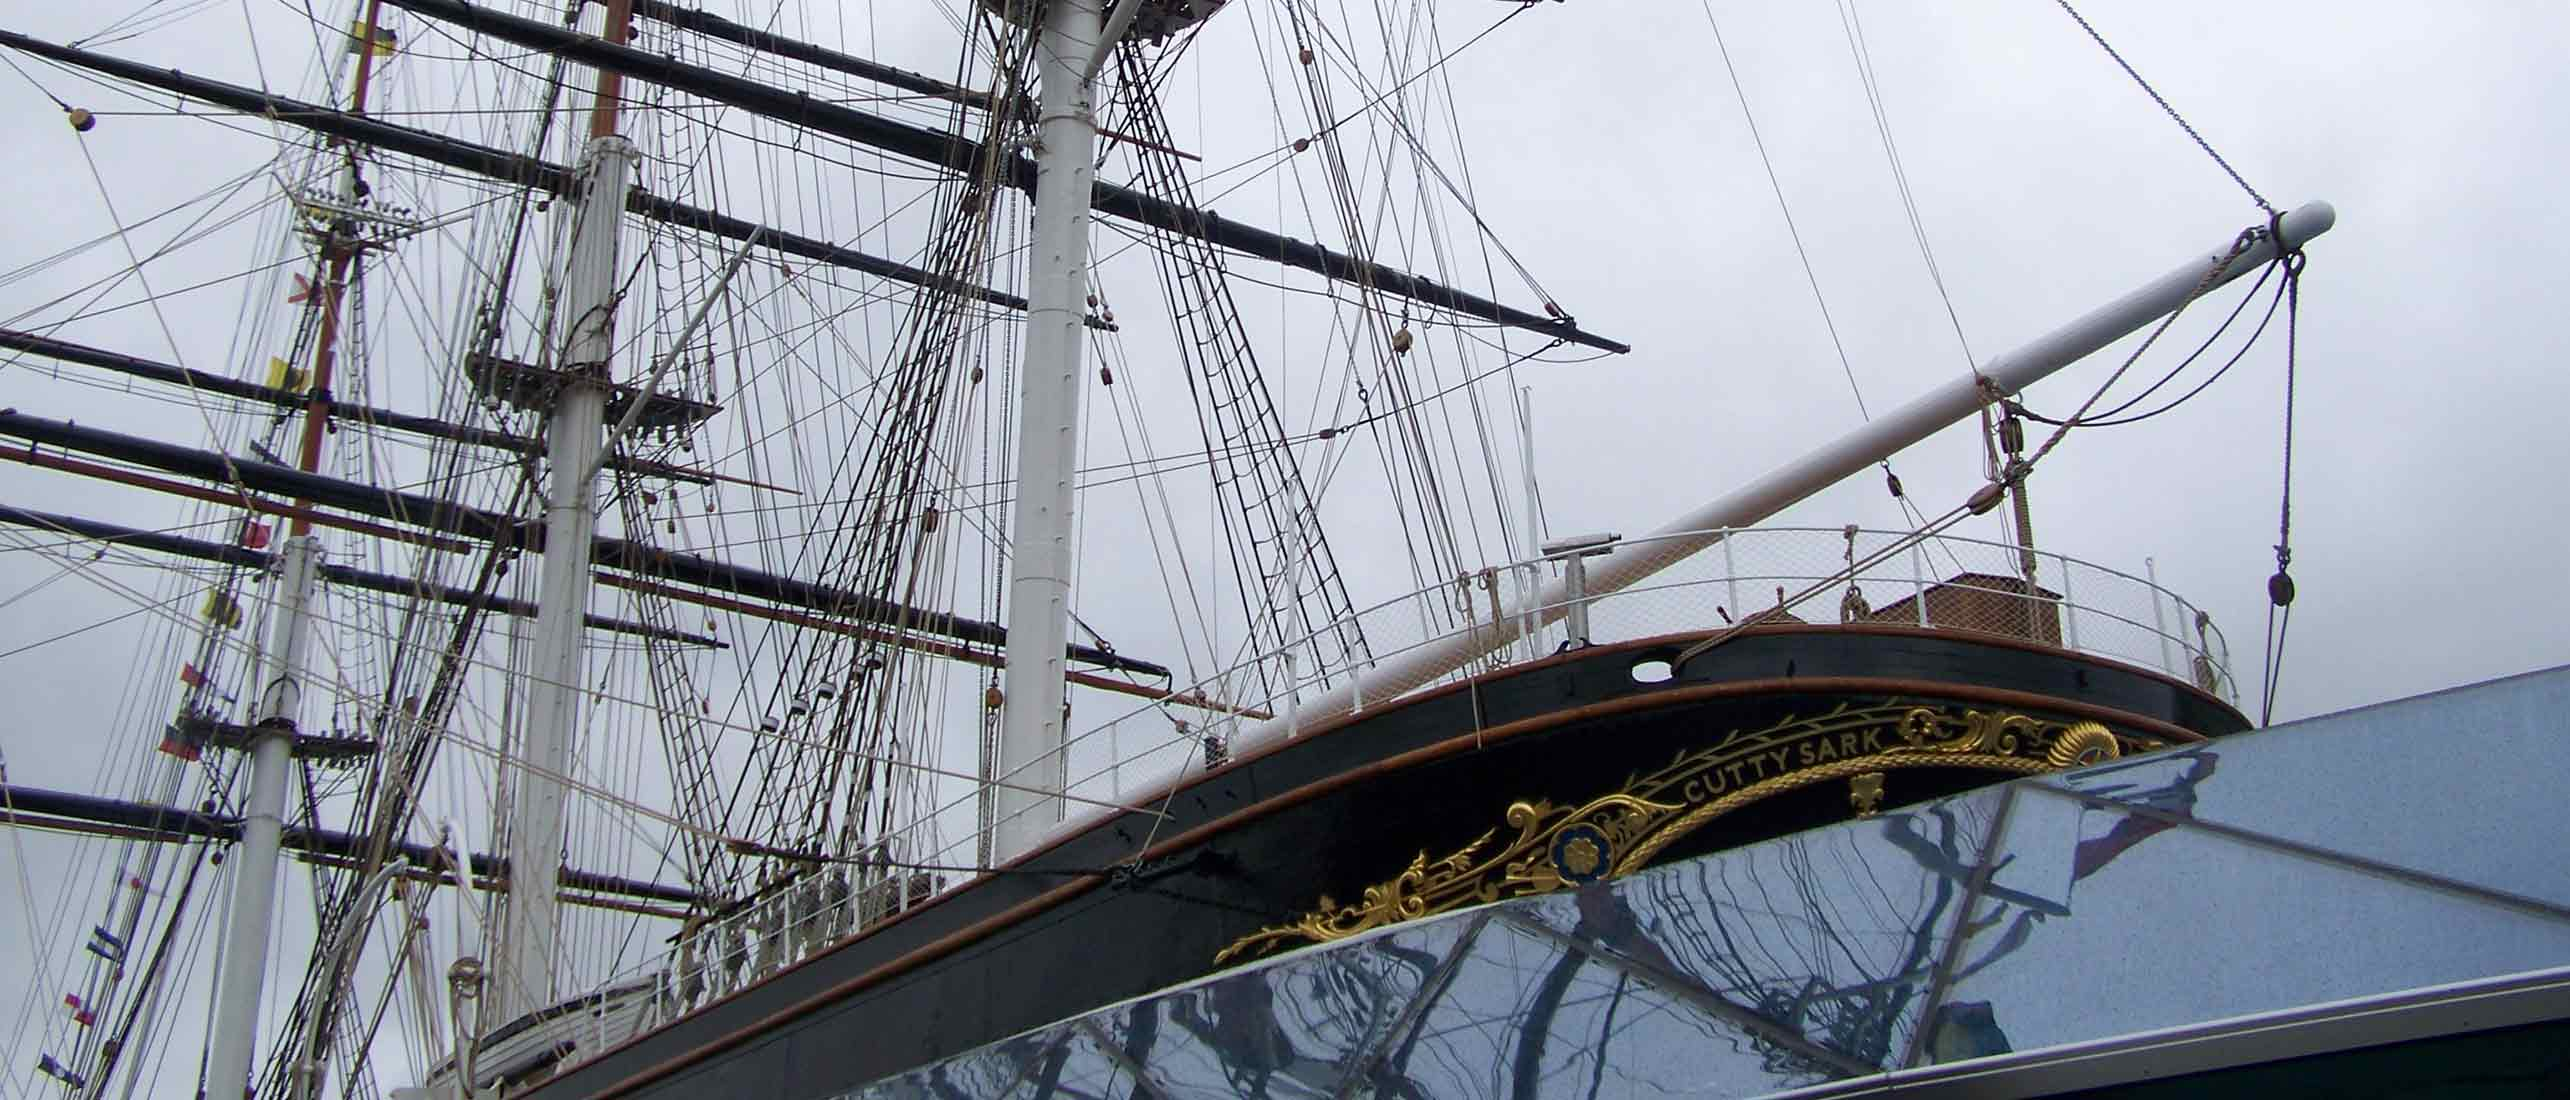 Caterware Cutty Sark